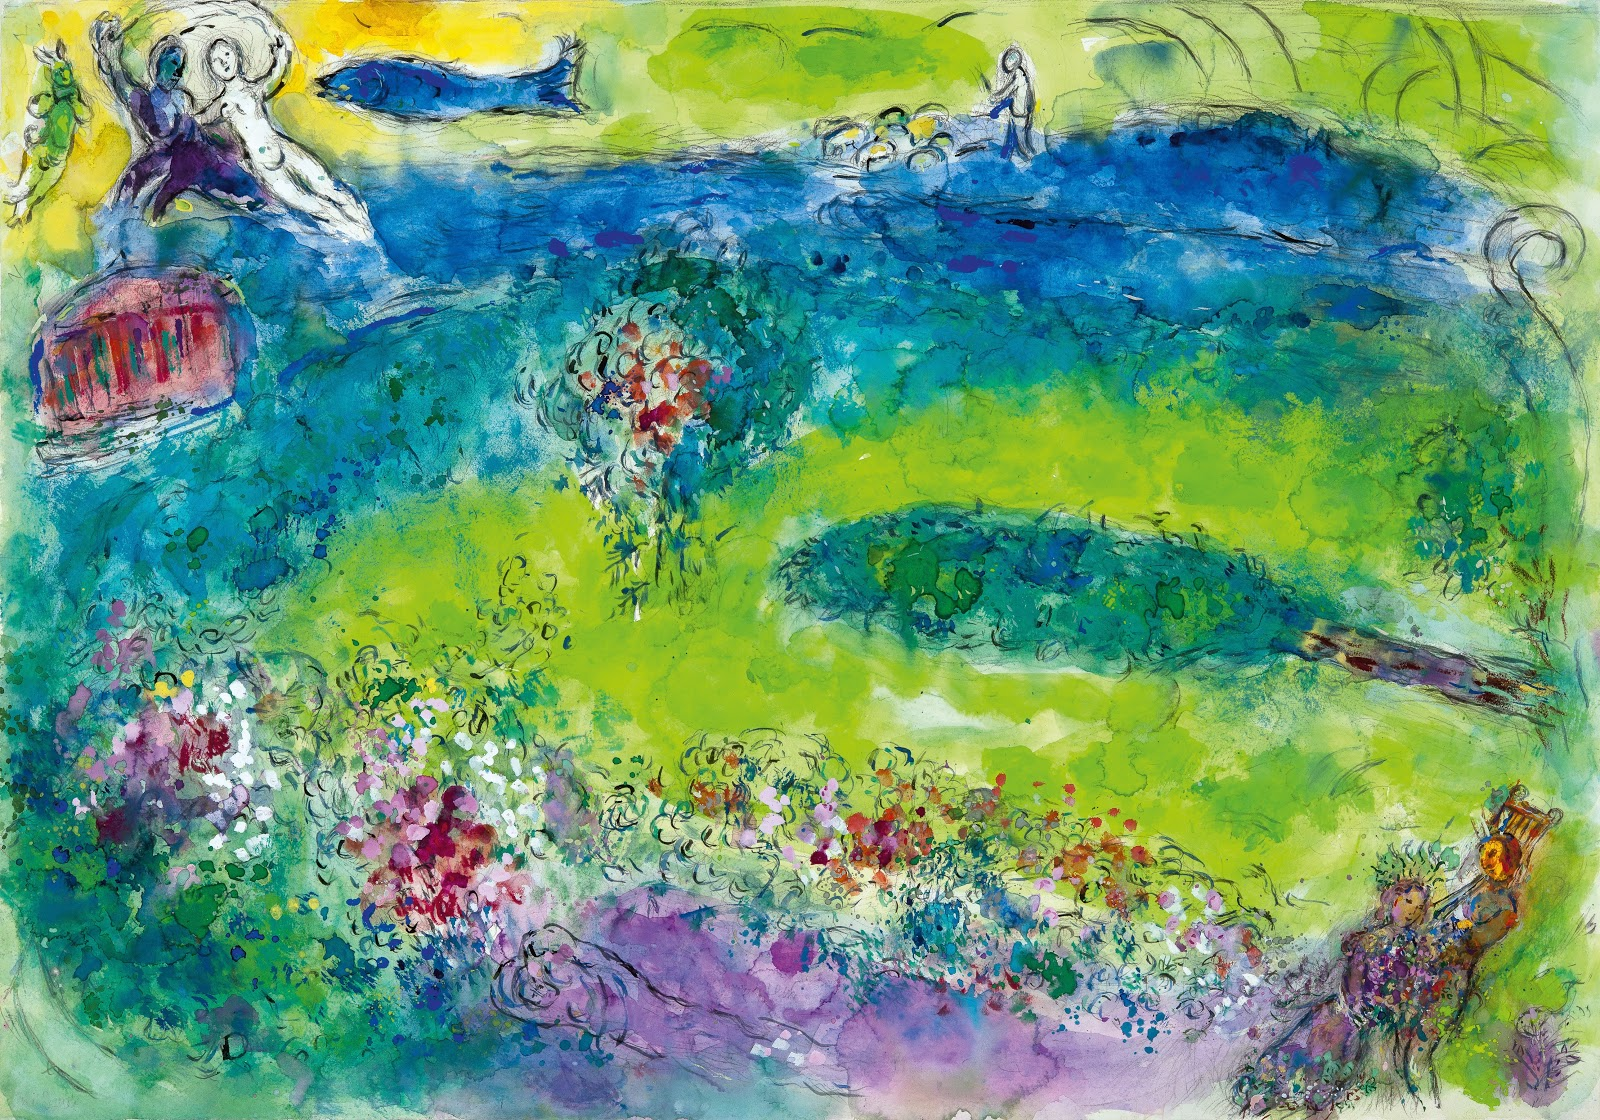 Art History News: CHAGALL: COLOUR AND MUSIC